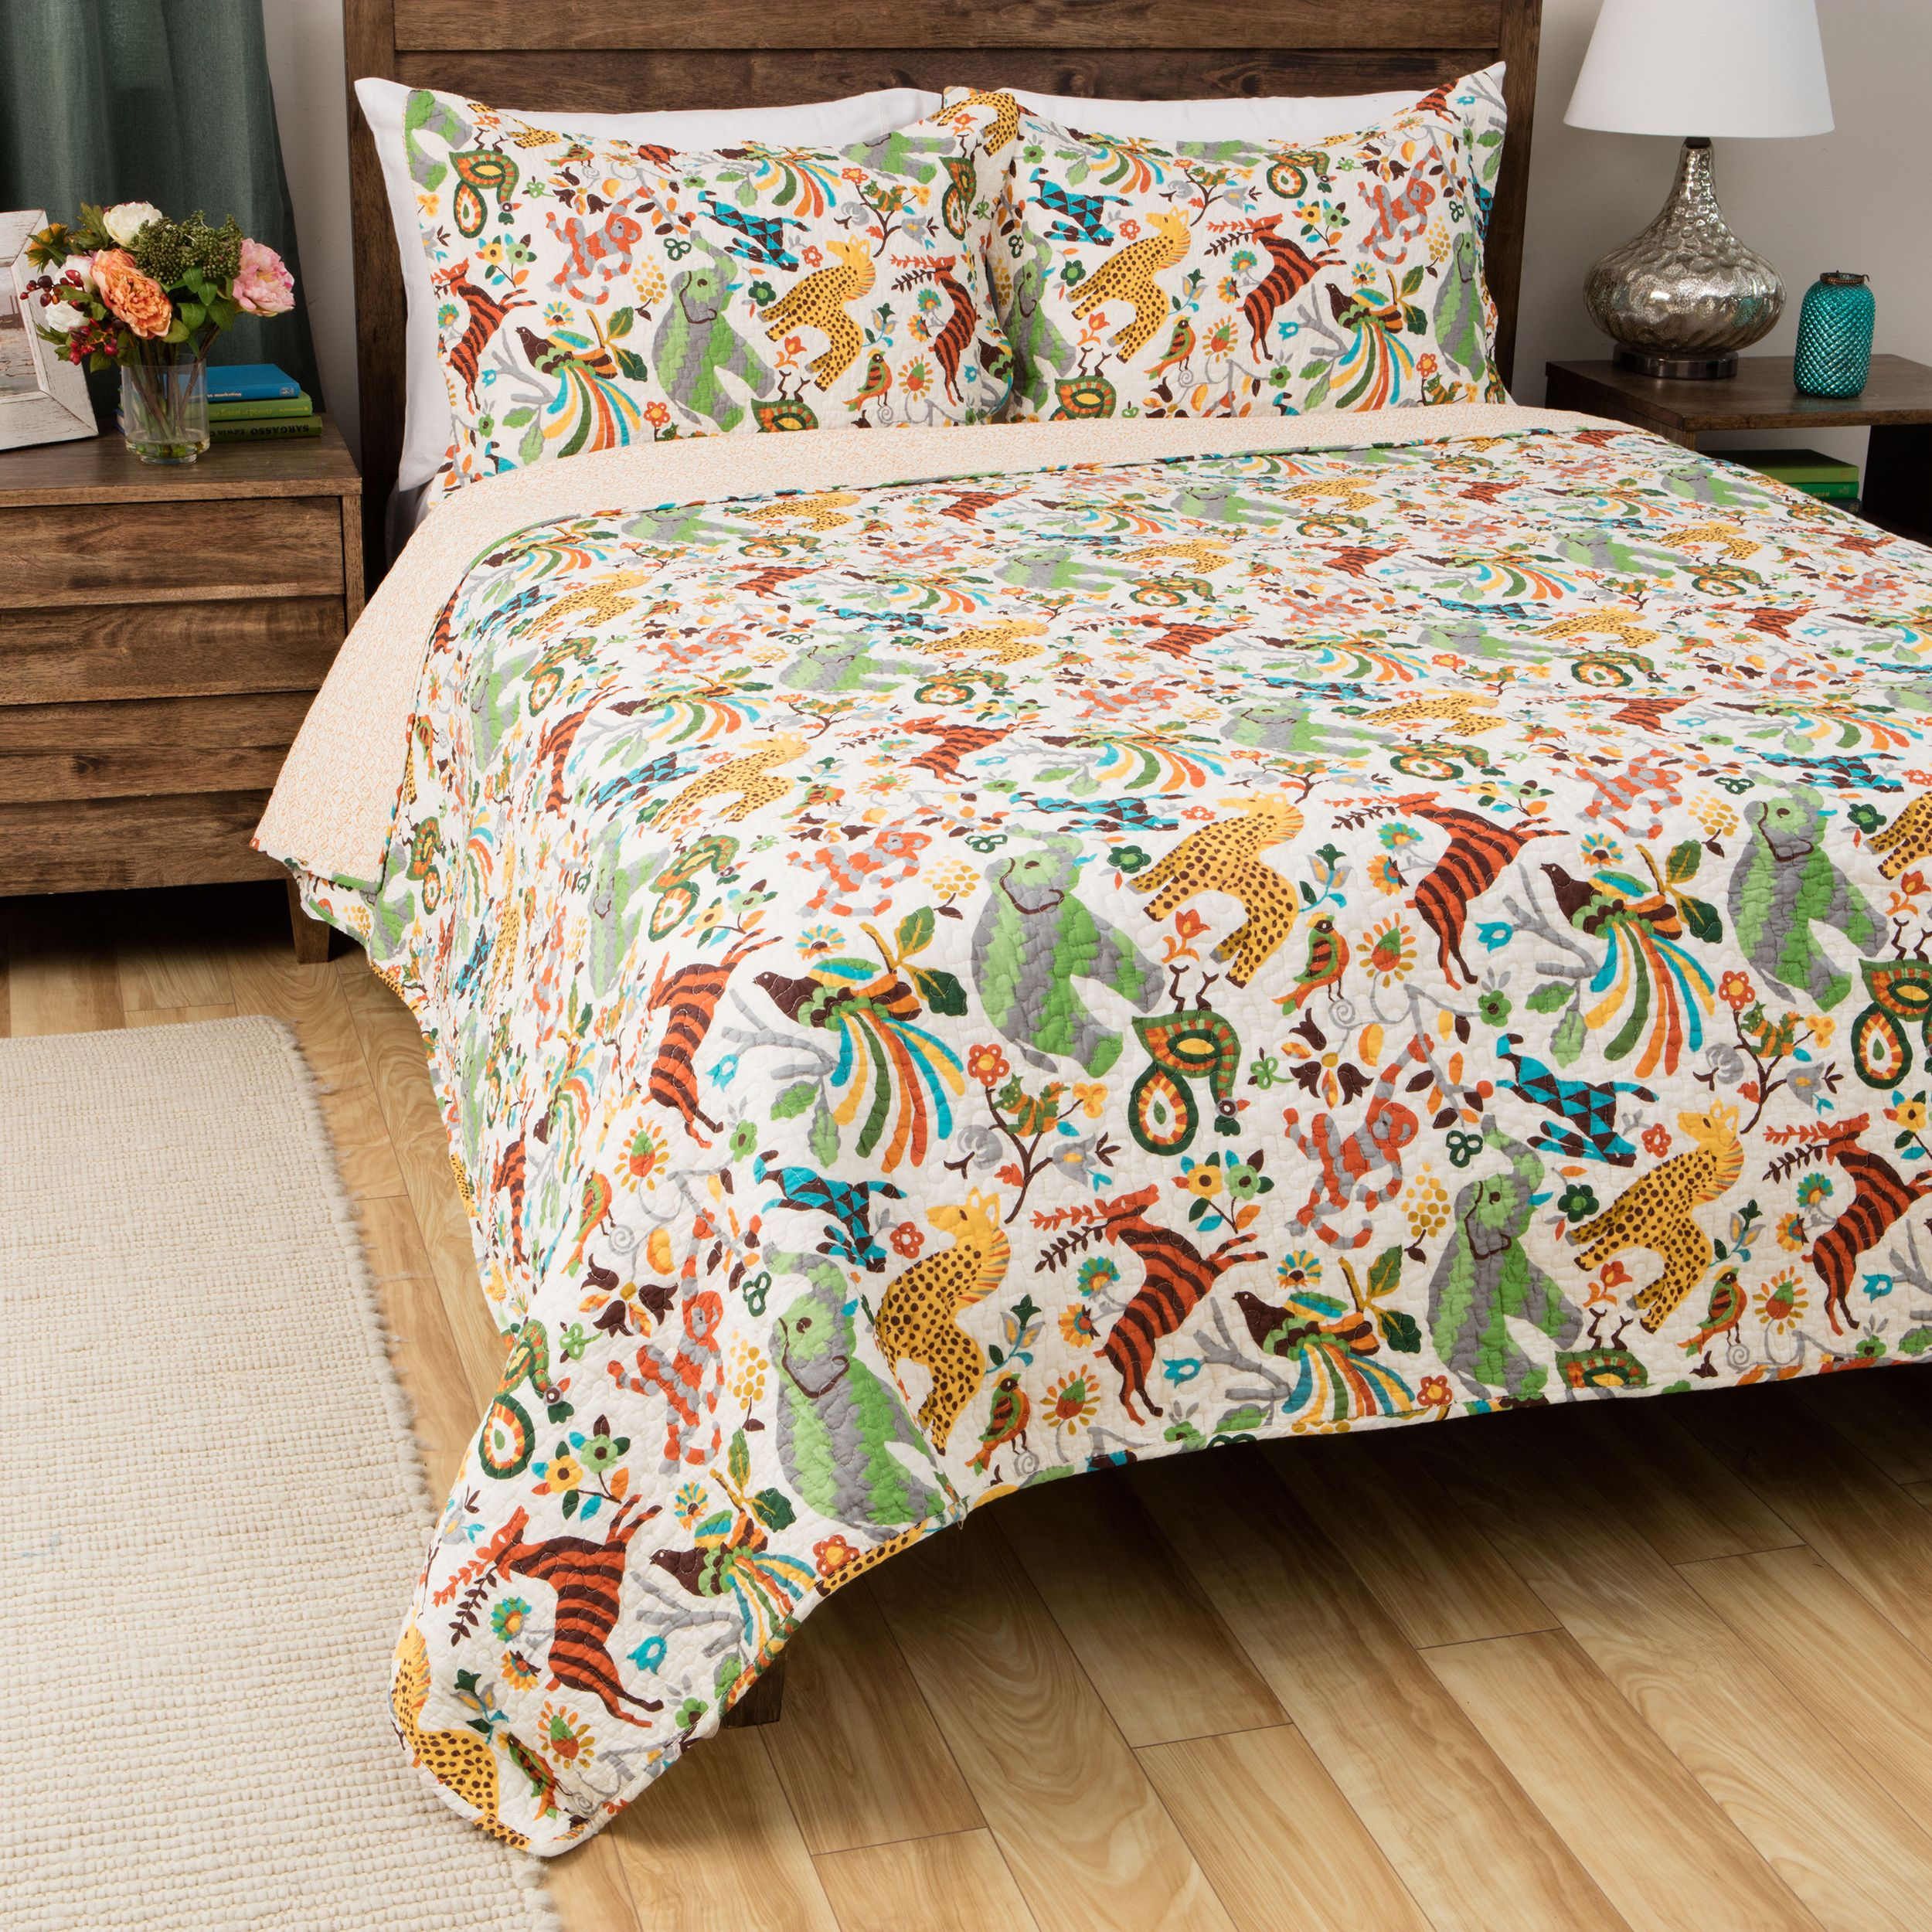 designs the online with single full quilts set sham usa crib sets bedding room best beddings for red pillow boy king canada quilt pictures linen navy cushion blue and cover size comforters boys sheets comforter duvet twin or of setsing covers queen outstanding white archaicawful doona duvets